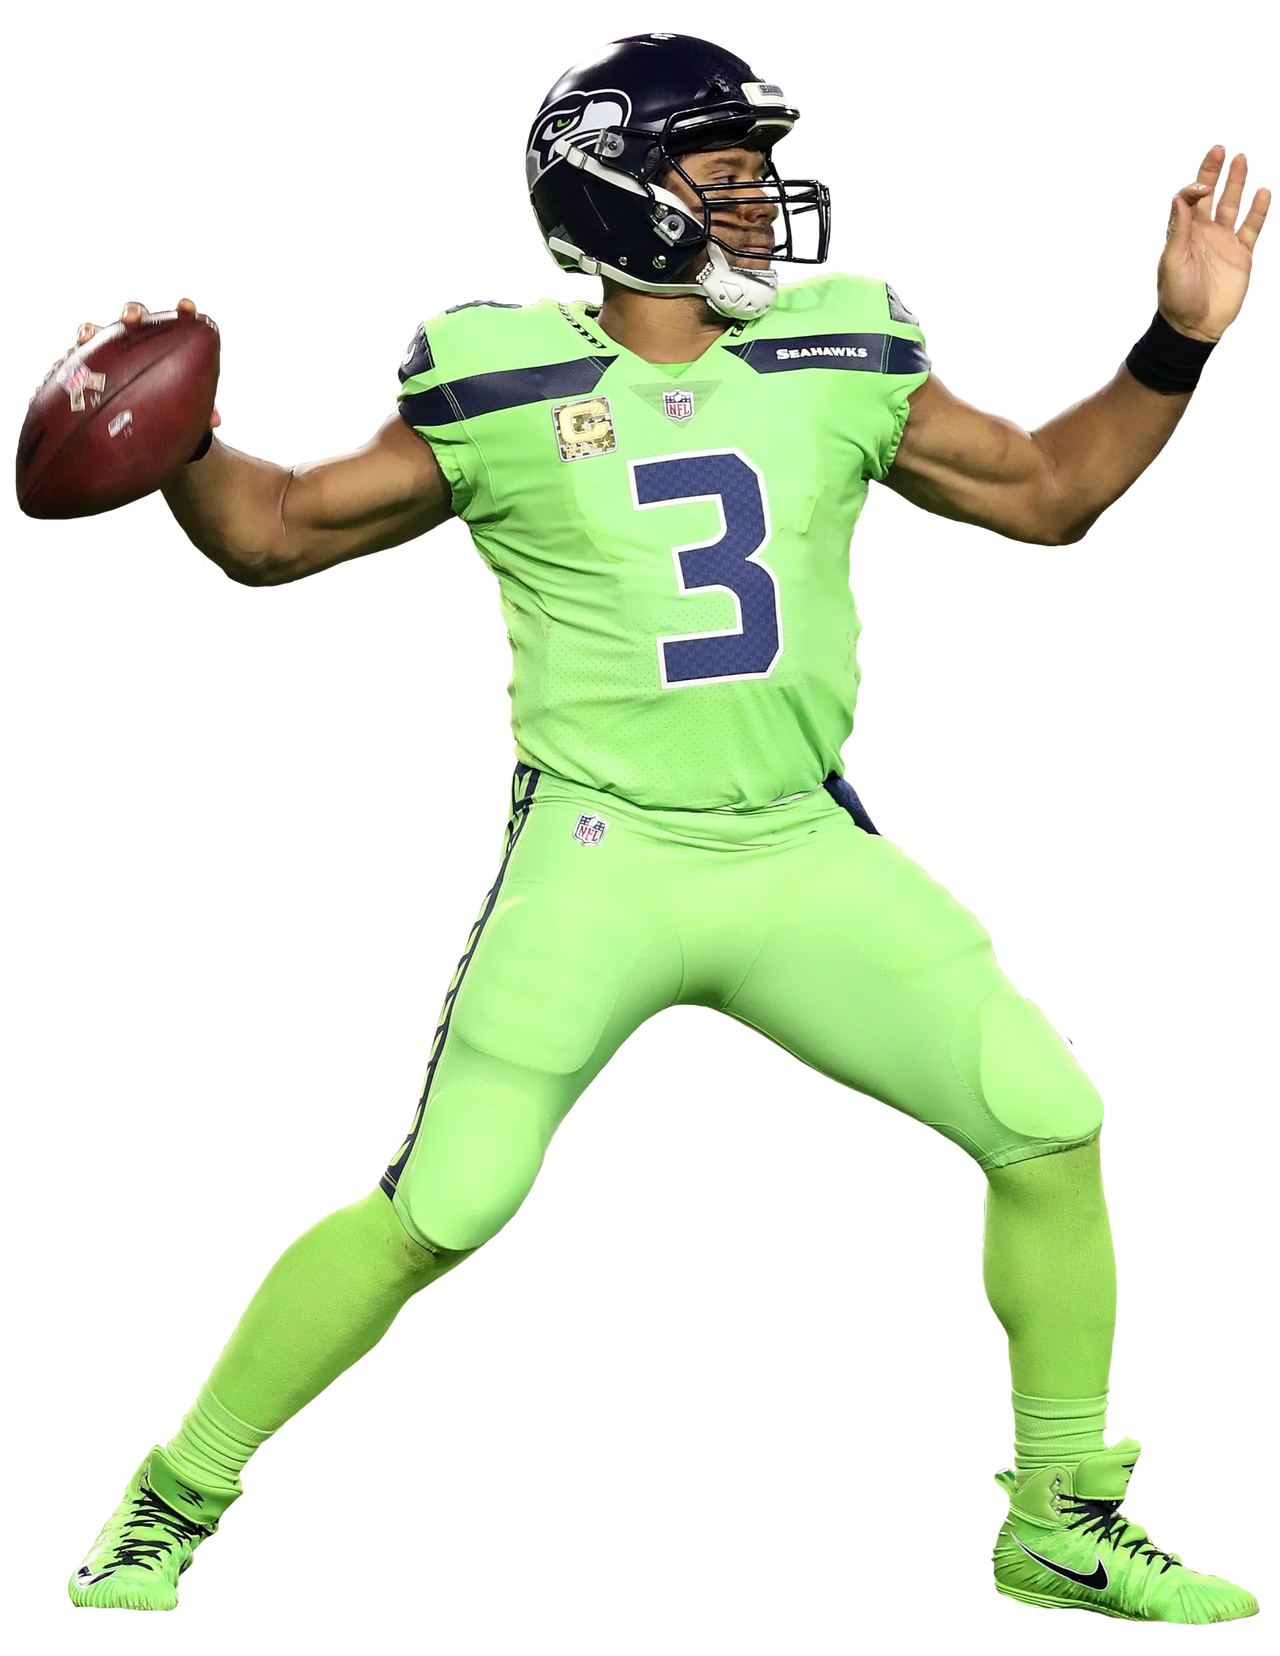 Russell Wilson Seahawks Color Rush By Nicolopez2602 On